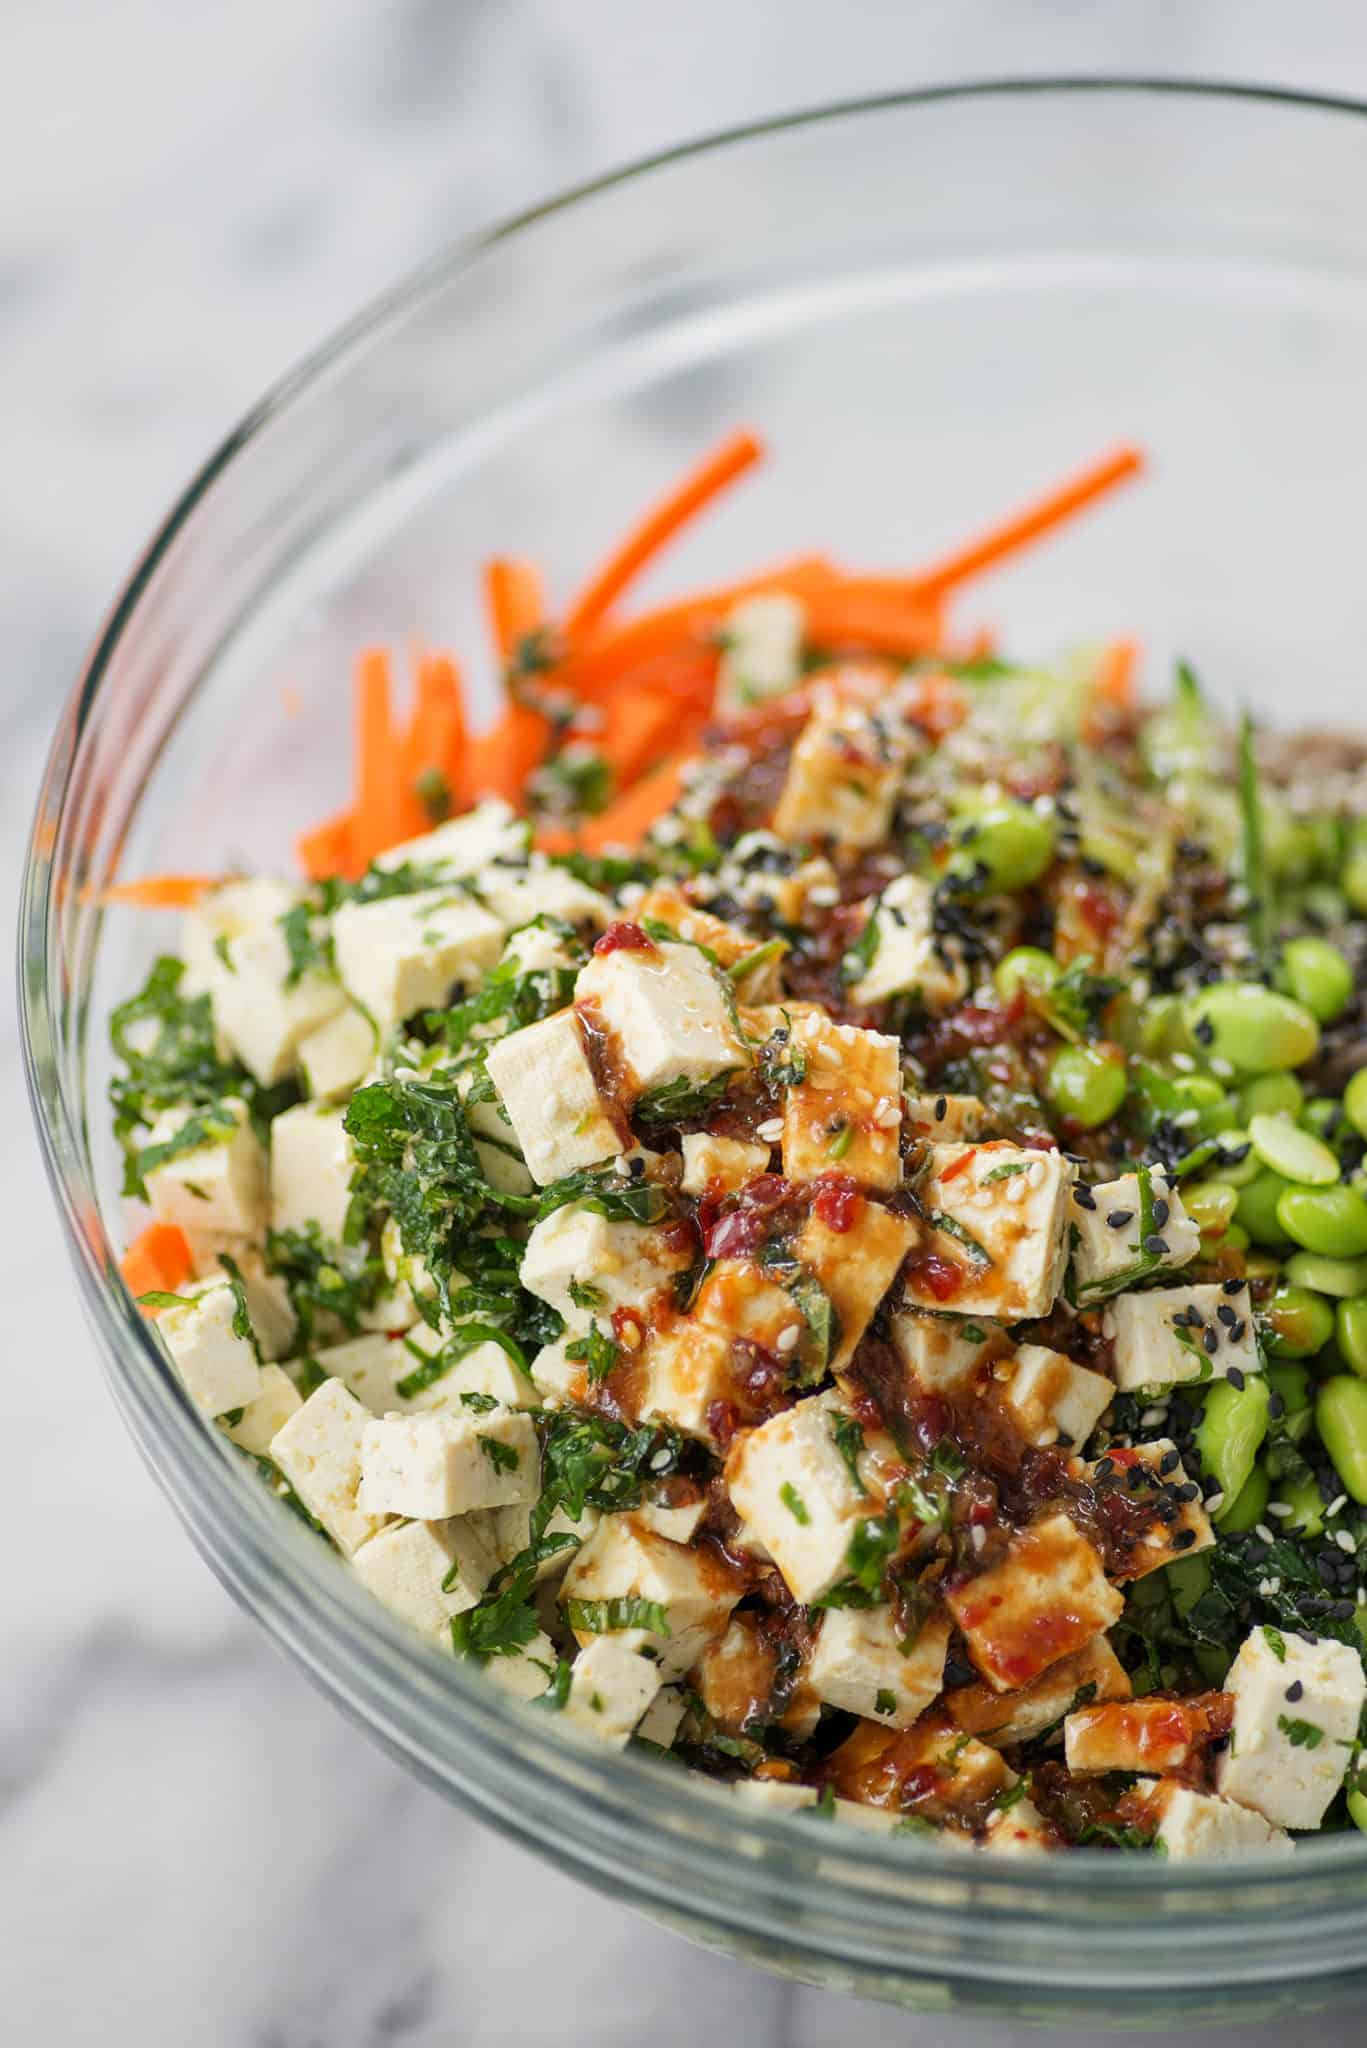 Veggie Soba Noodles with Marinated Tofu and Ginger-Soy Sauce. This cold noodle salad is packed with vegetables, fiber and healthy protein. | www.delishknowledge.com